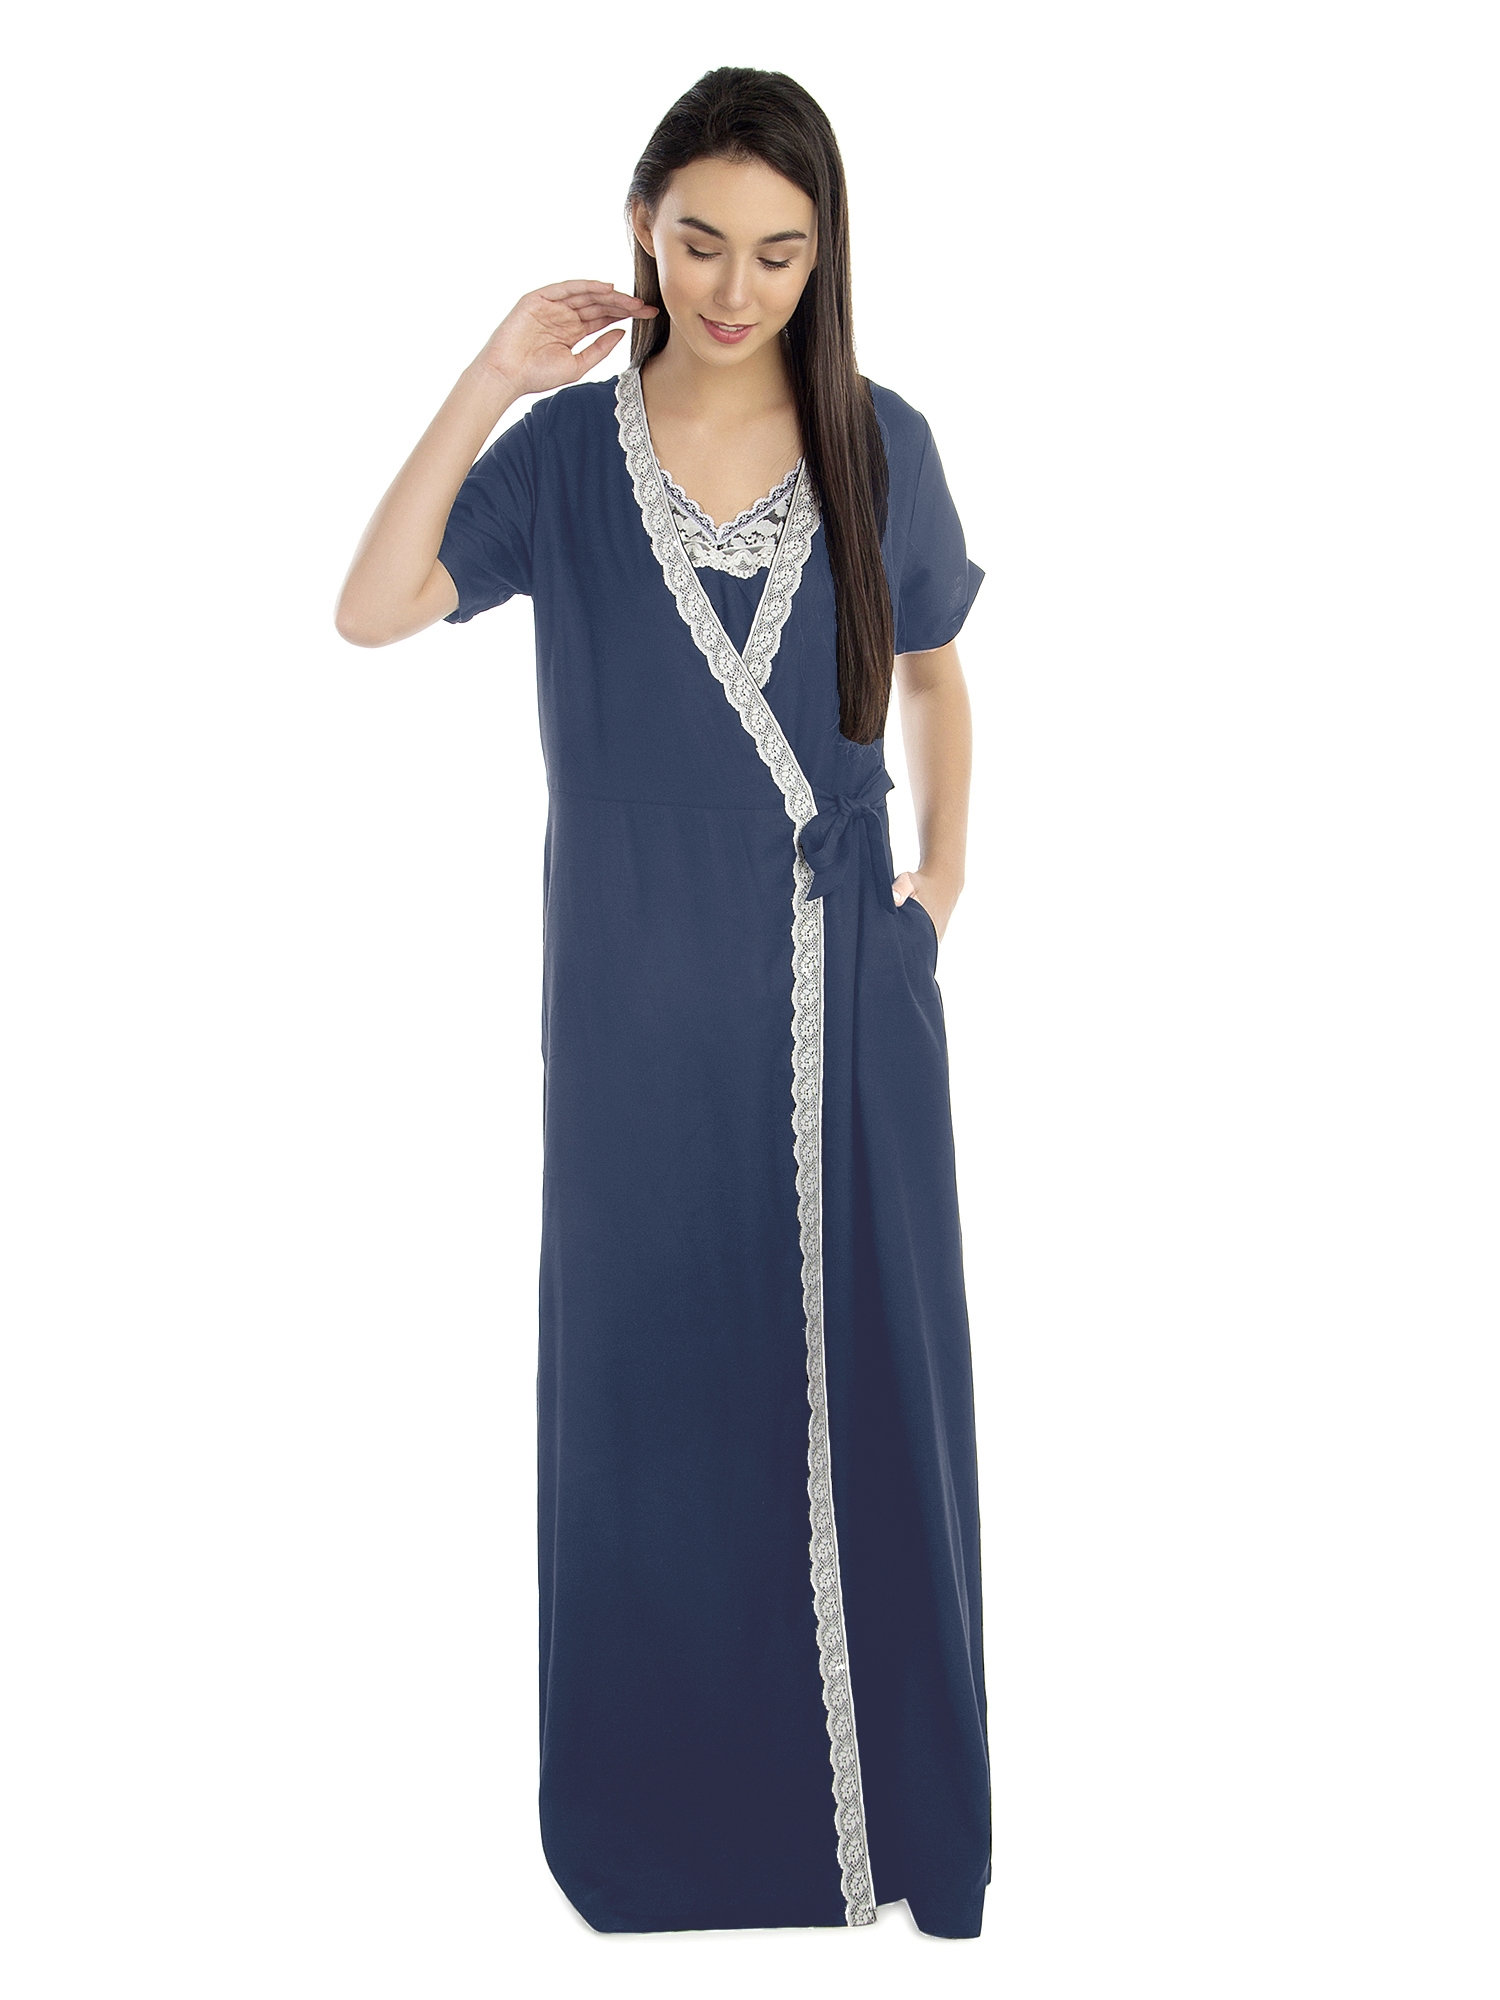 Lace Embellished Nighty With Robe in Charcoal Grey